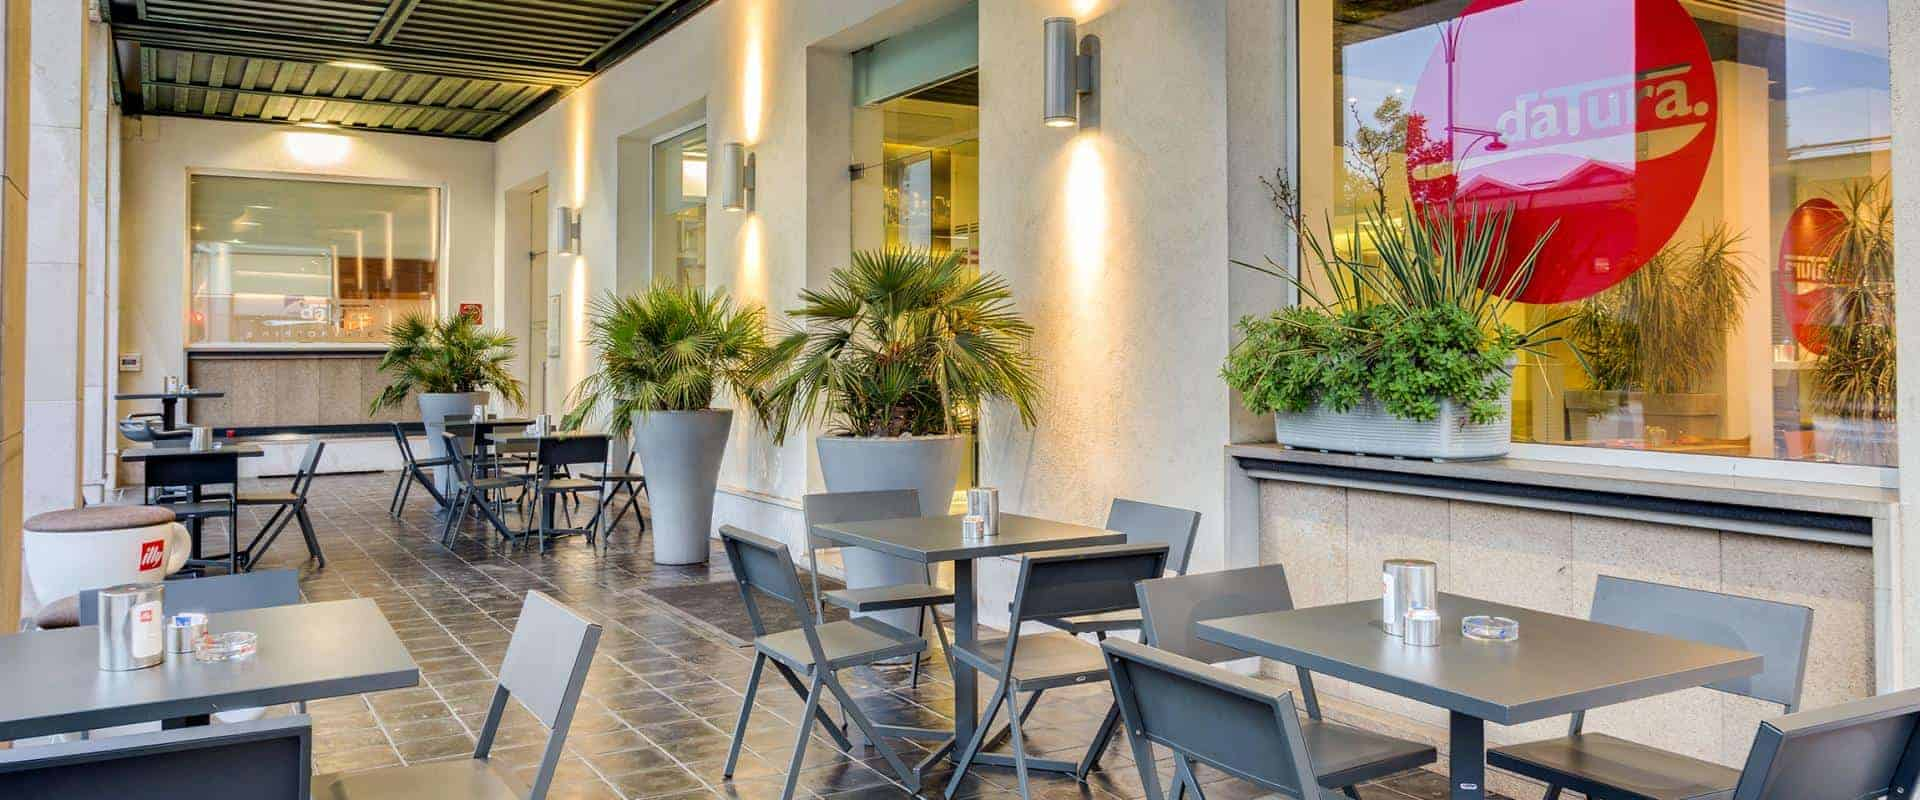 Best Western Plus Hotel Bologna